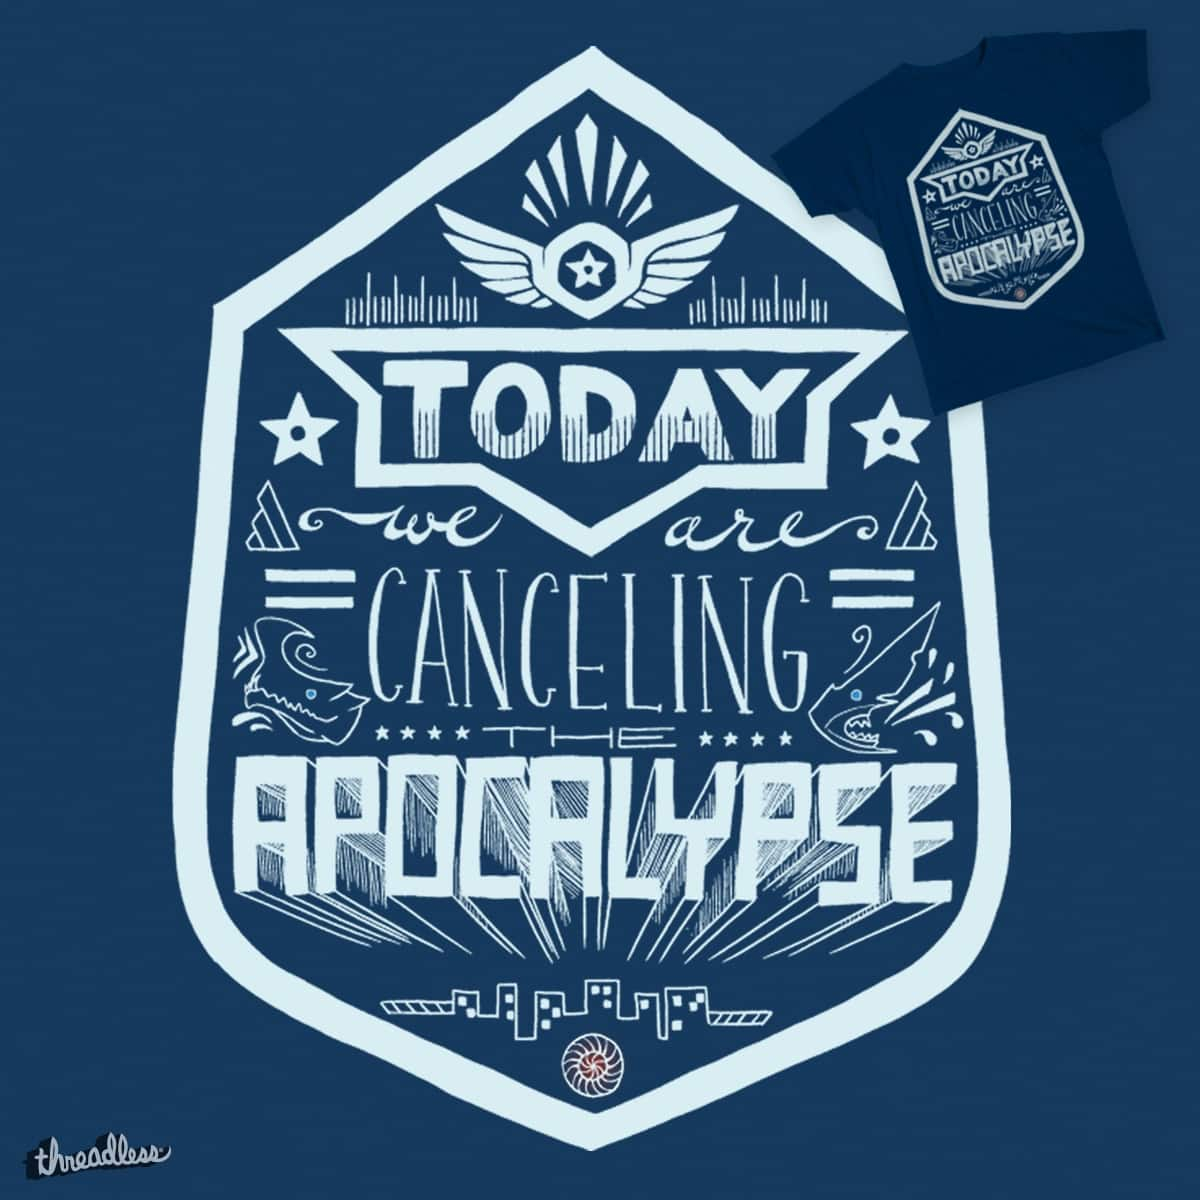 Canceling The Apocalypse by gnuchi on Threadless